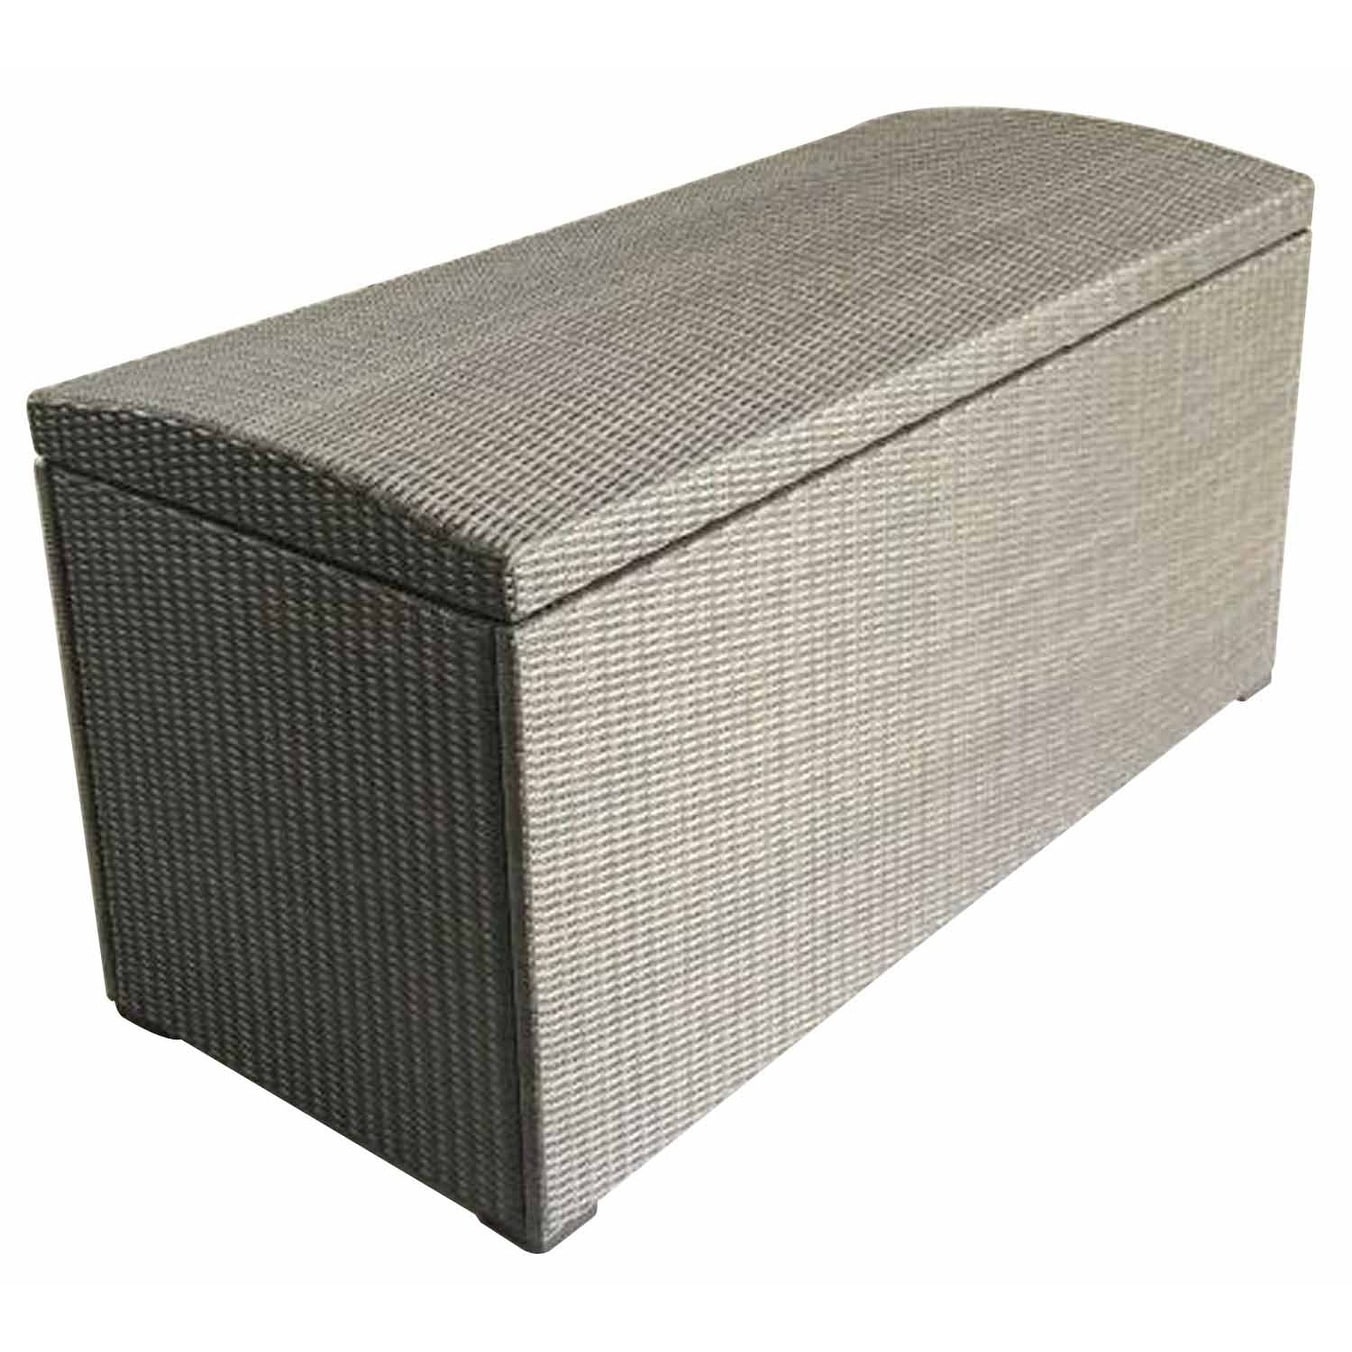 Wicker Outdoor Storage Box Bench Free Shipping Today 22258448